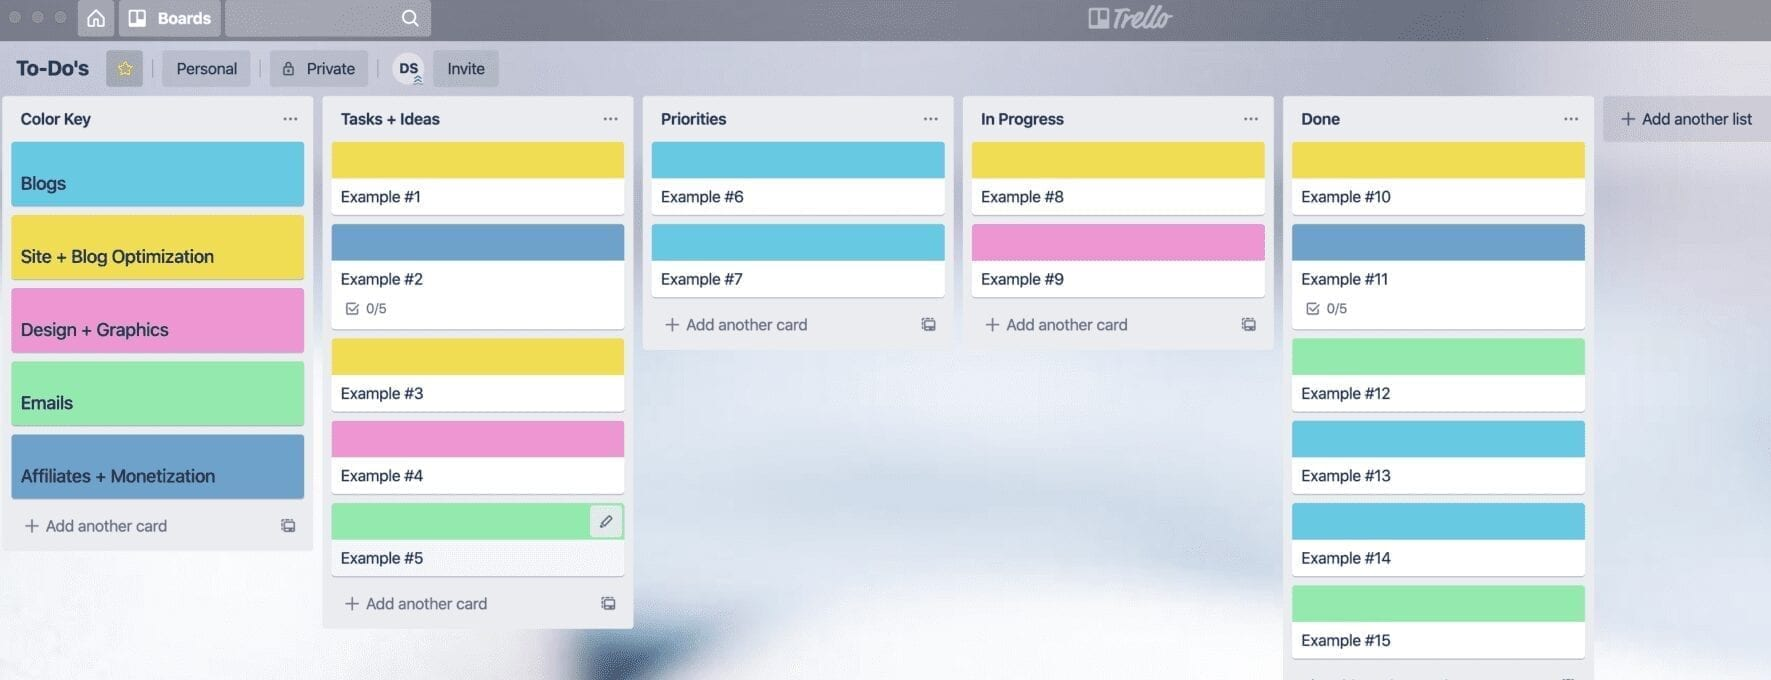 Trello Project Management Tool   The Best Blogging Tools That I Couldn't Live Without